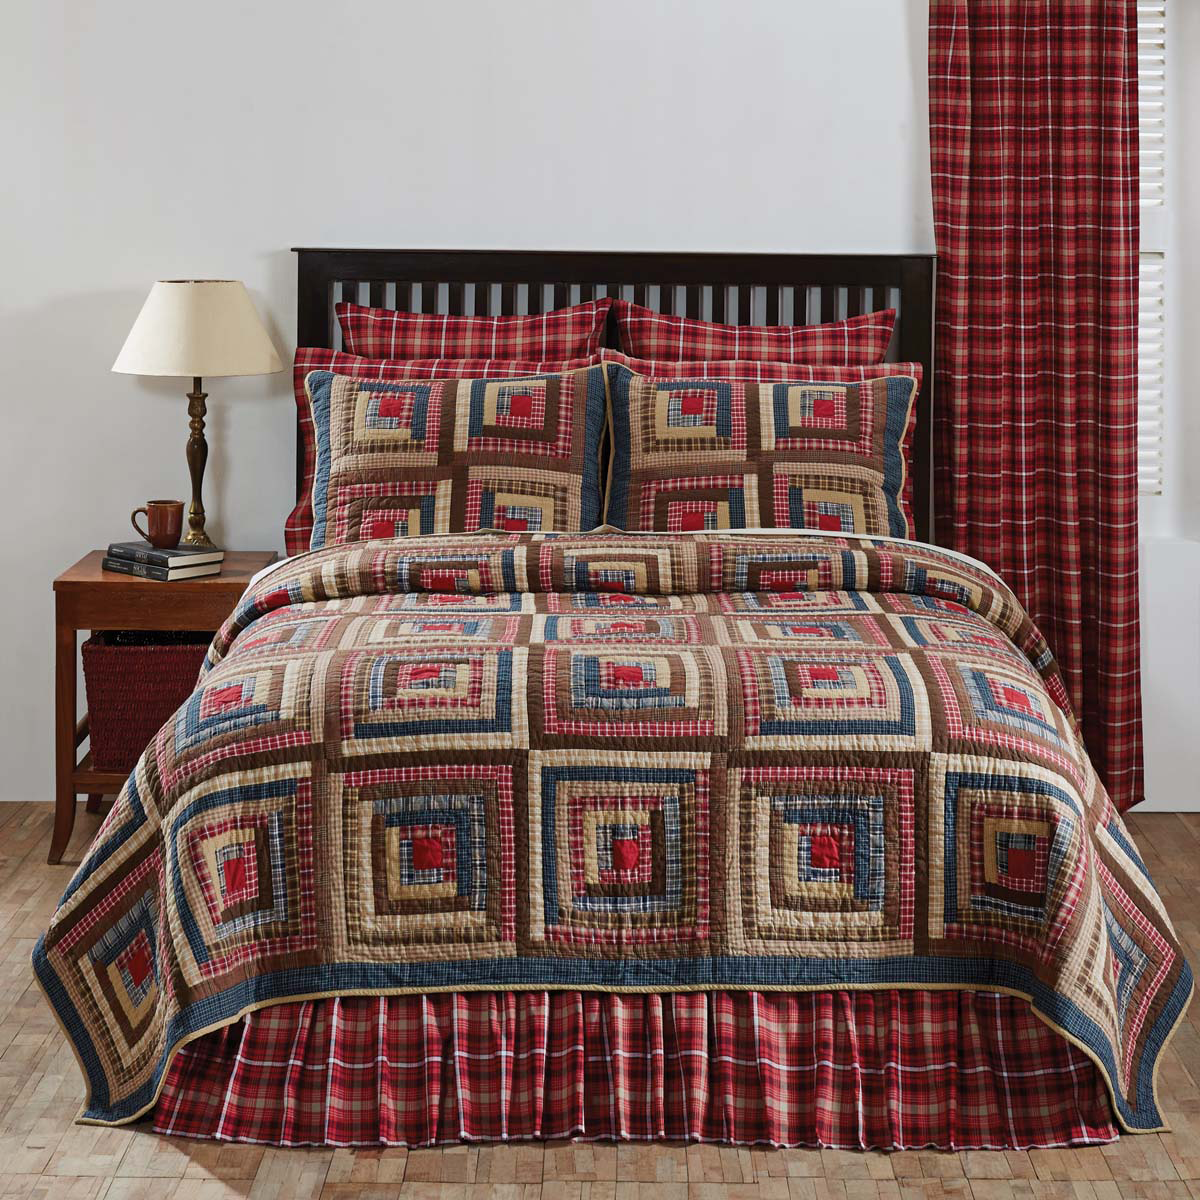 5-pc King - BRAXTON Quilt Country Log Set - Red, Blue, Natural - VHC Brands